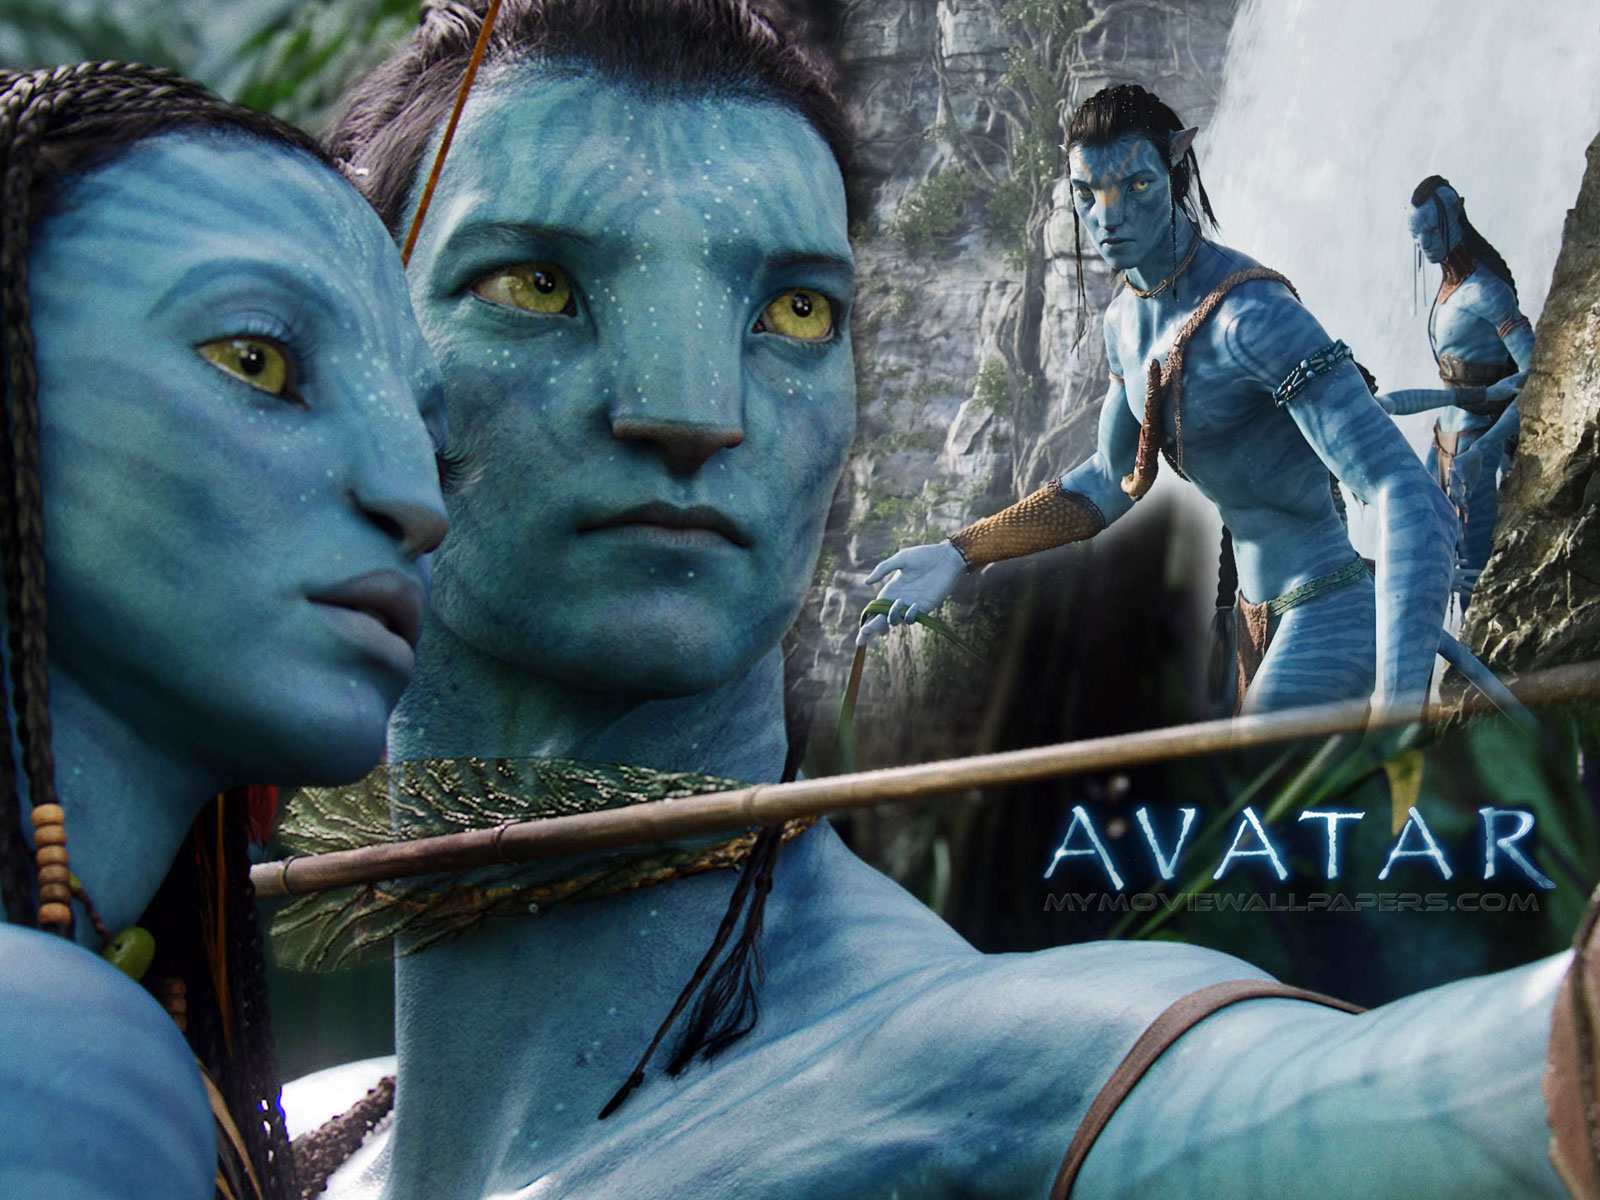 avatar wallpaper downloads for free - wallpapersafari